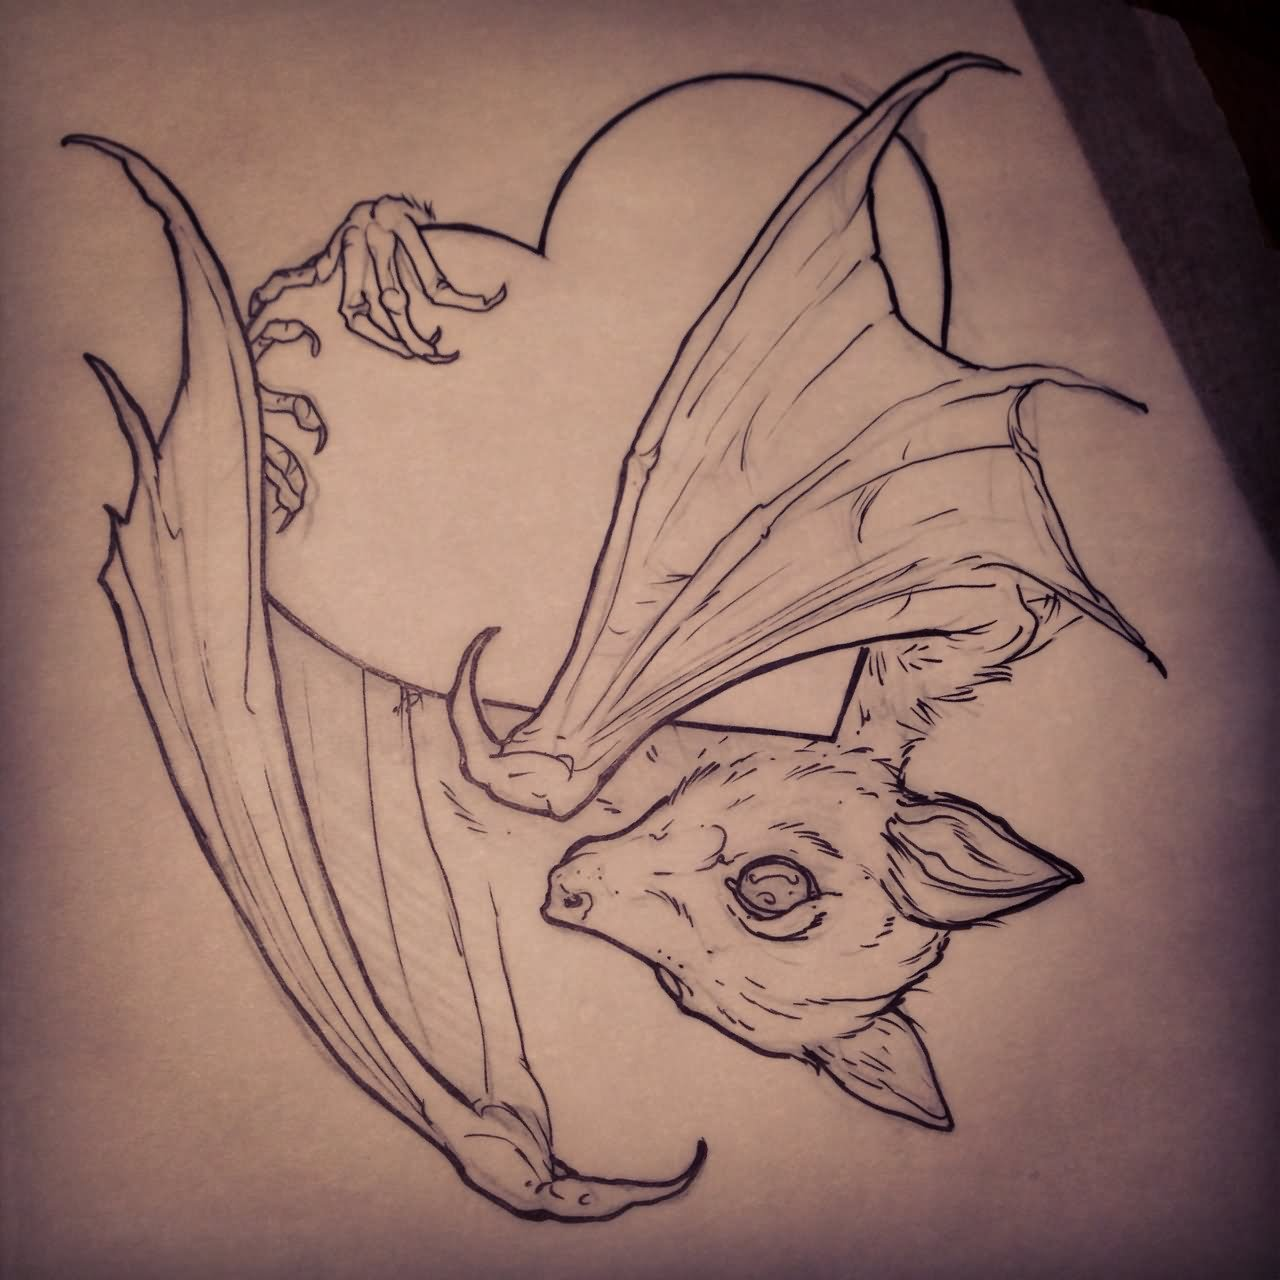 15+ Cool Bat Tattoo Images And Design Ideas